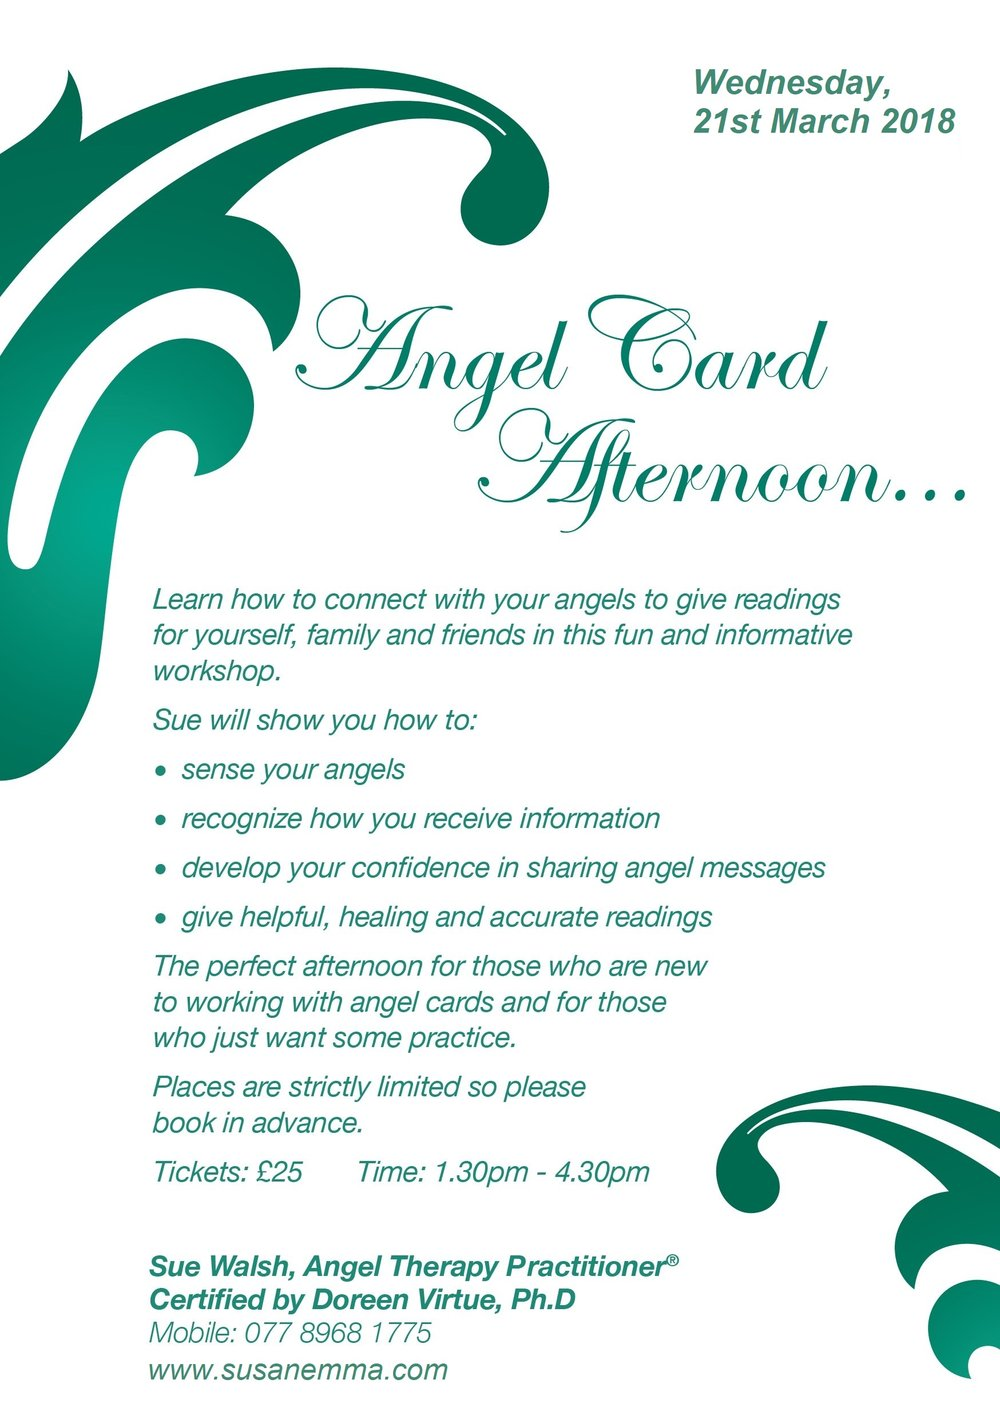 Angel_card_afternoon_A5 - 2018.jpg